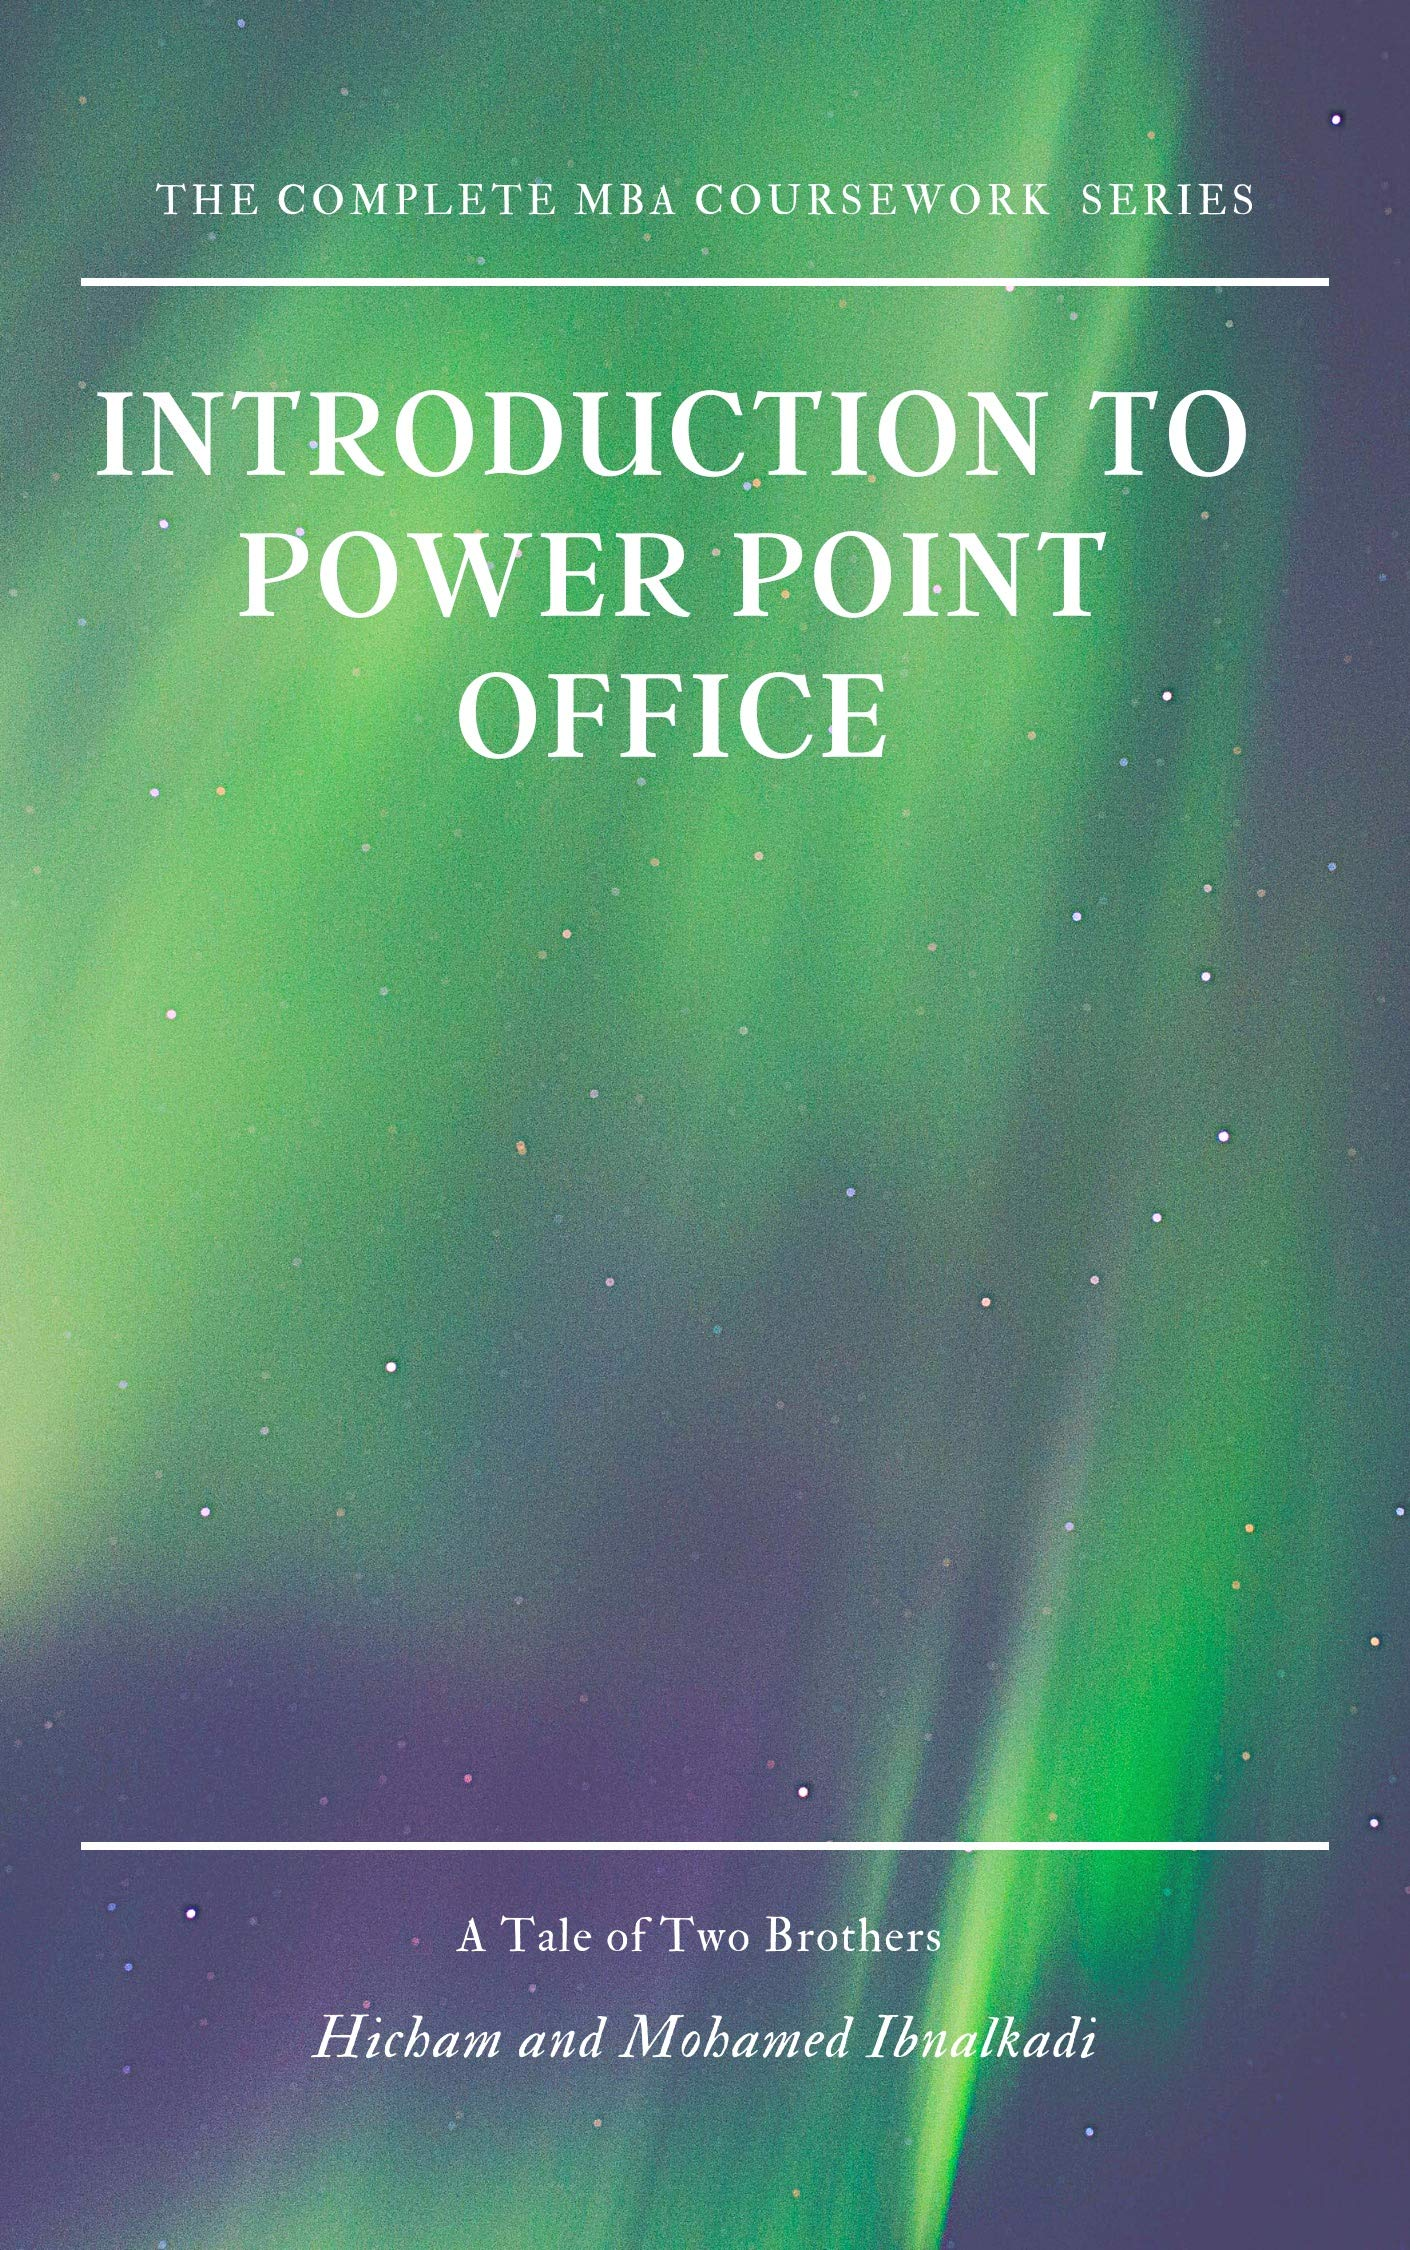 Introduction to MS Office PowerPoint (101 Non-Fiction Series Book 10)